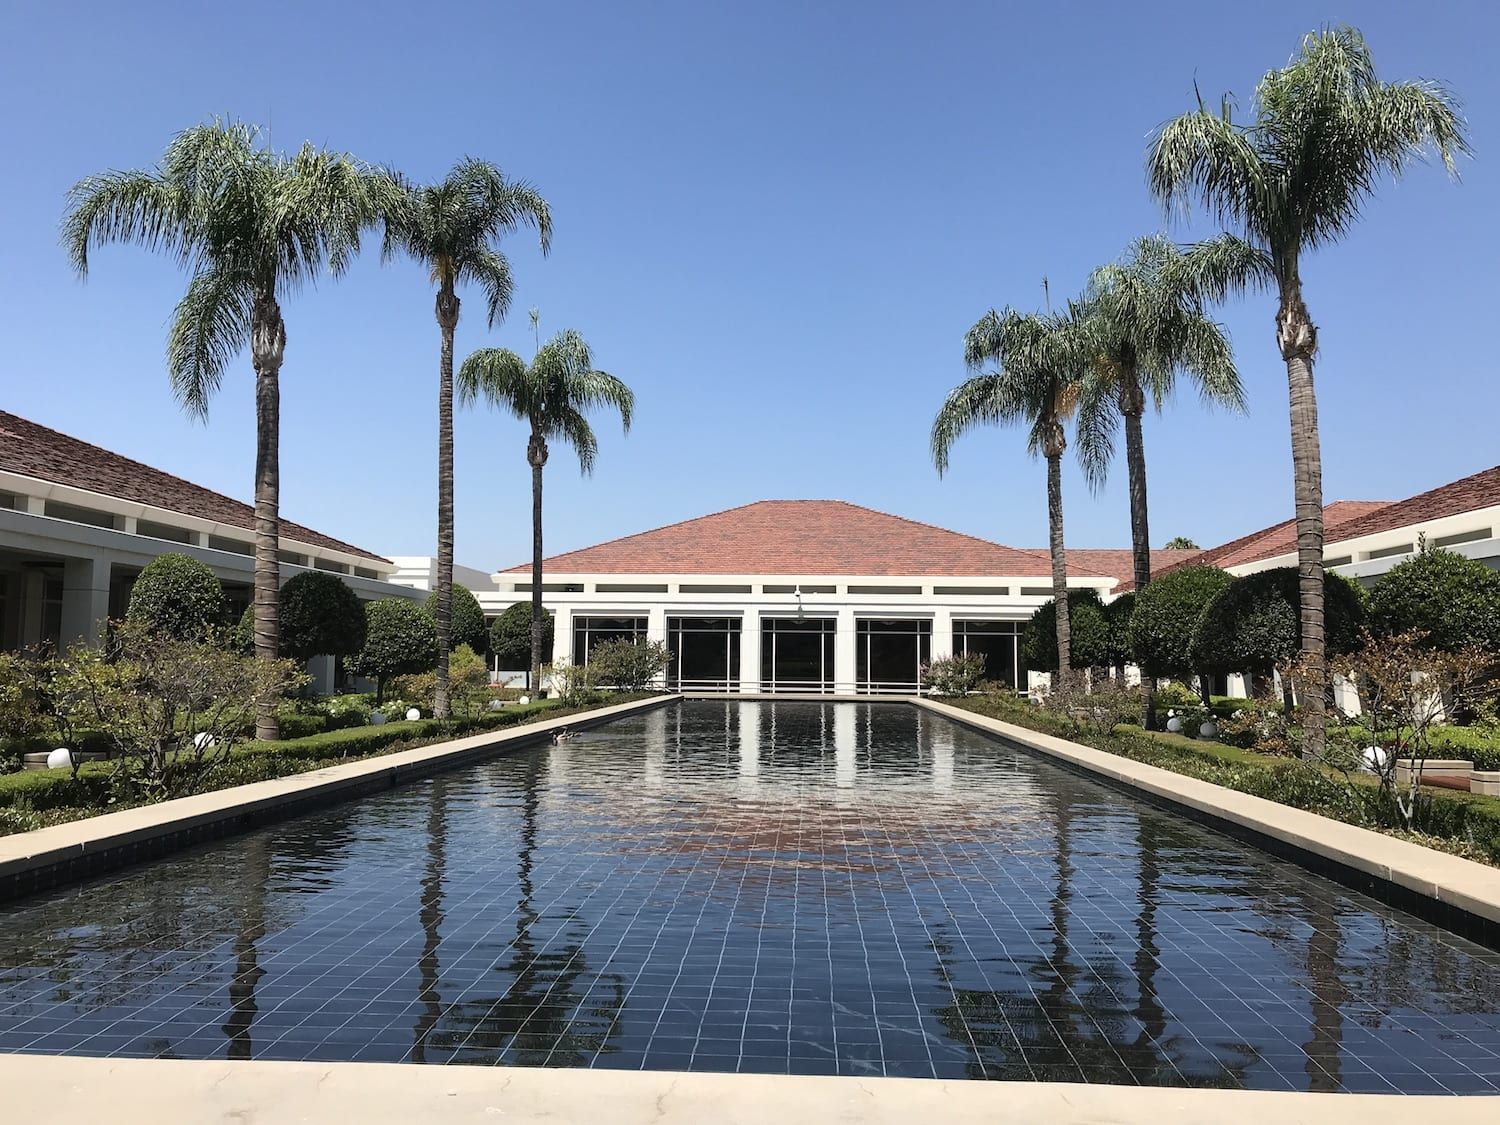 Nixon Presidential Library and Museum